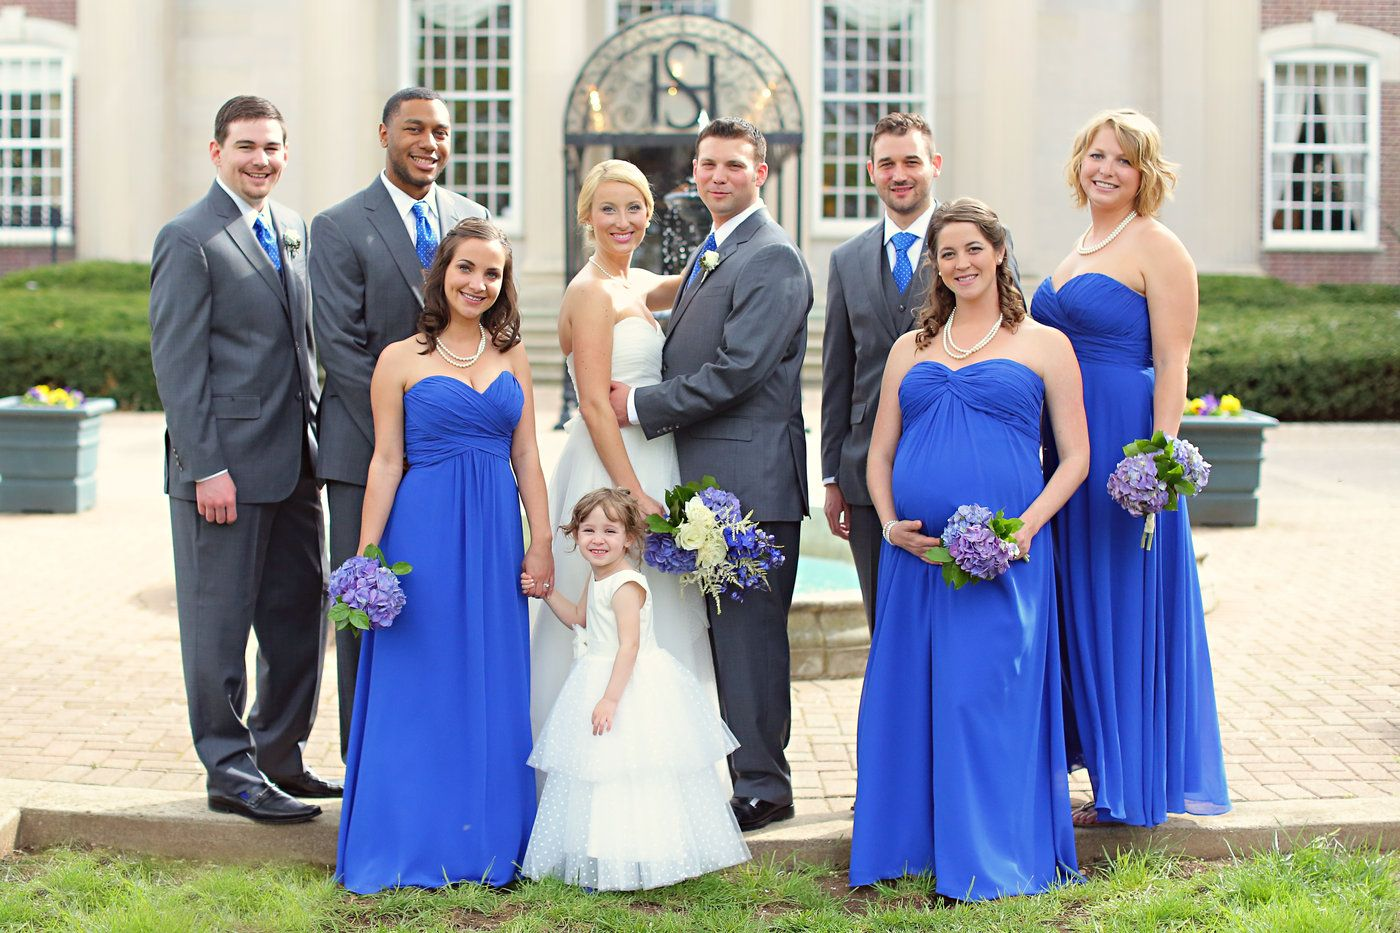 Wedding party royal blue bridesmaids and ties with grey suits